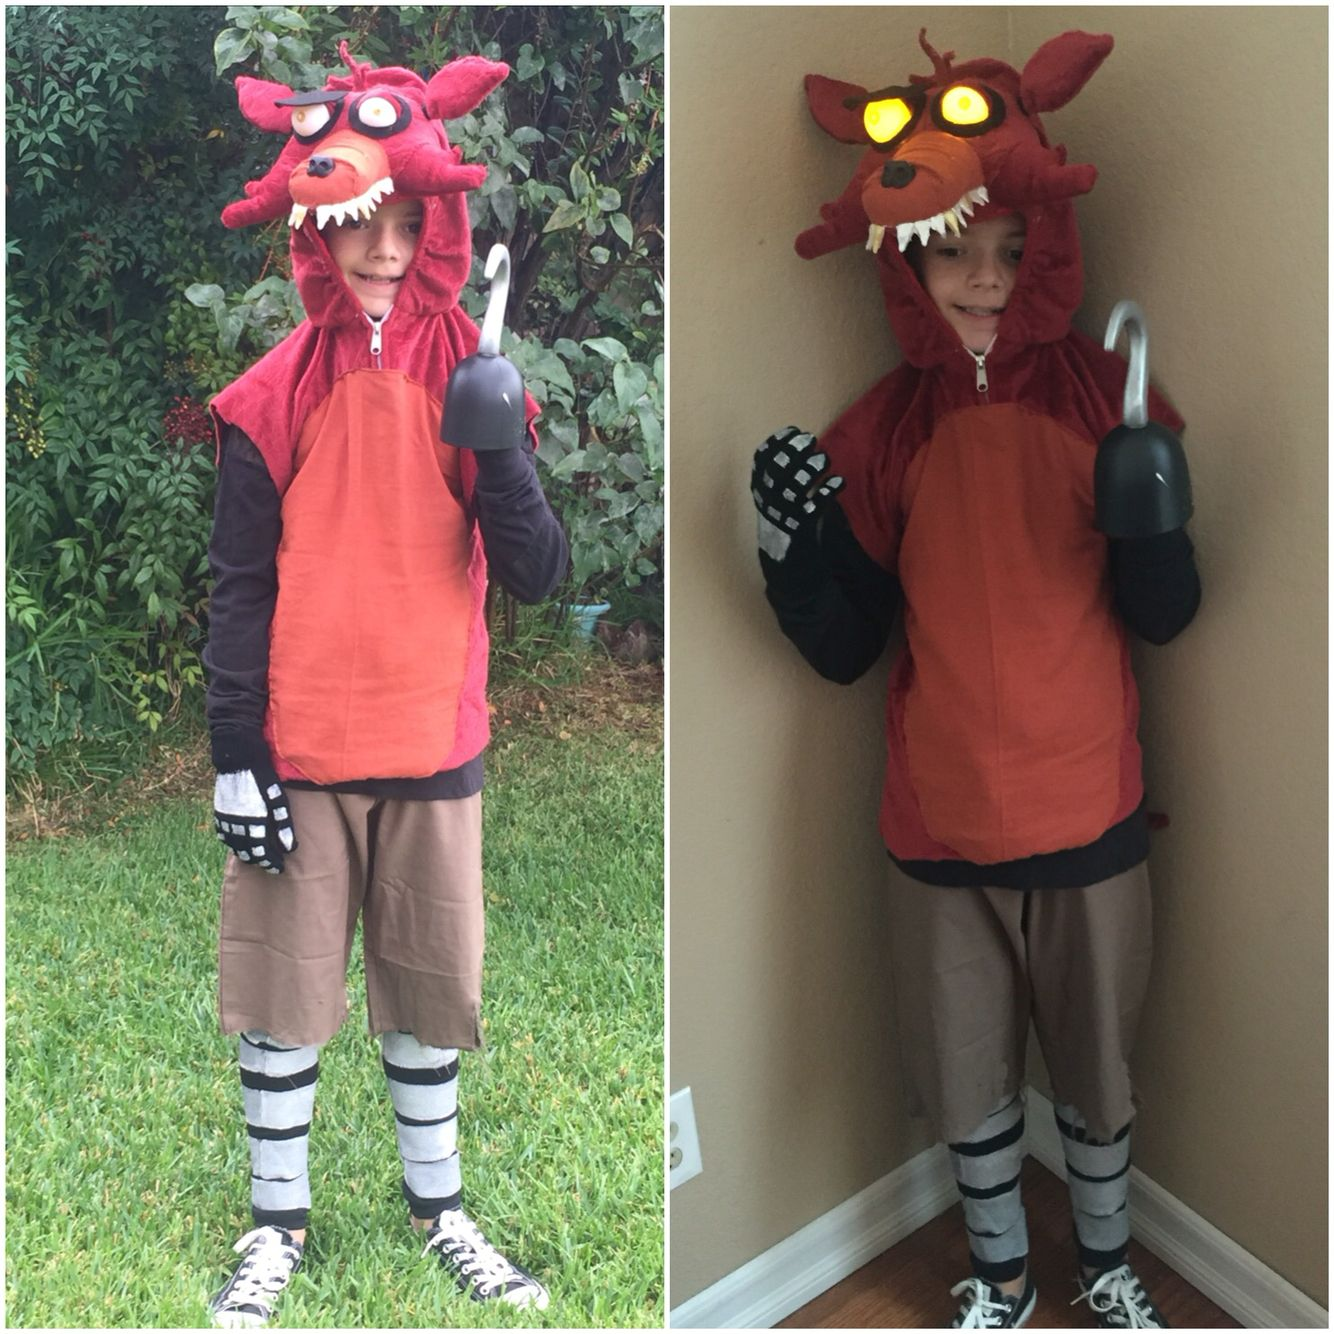 Fnaf bonnie costume for sale - Diy Home Made Foxy Fnaf Five Nights At Freddys Costume Light Up Eyes